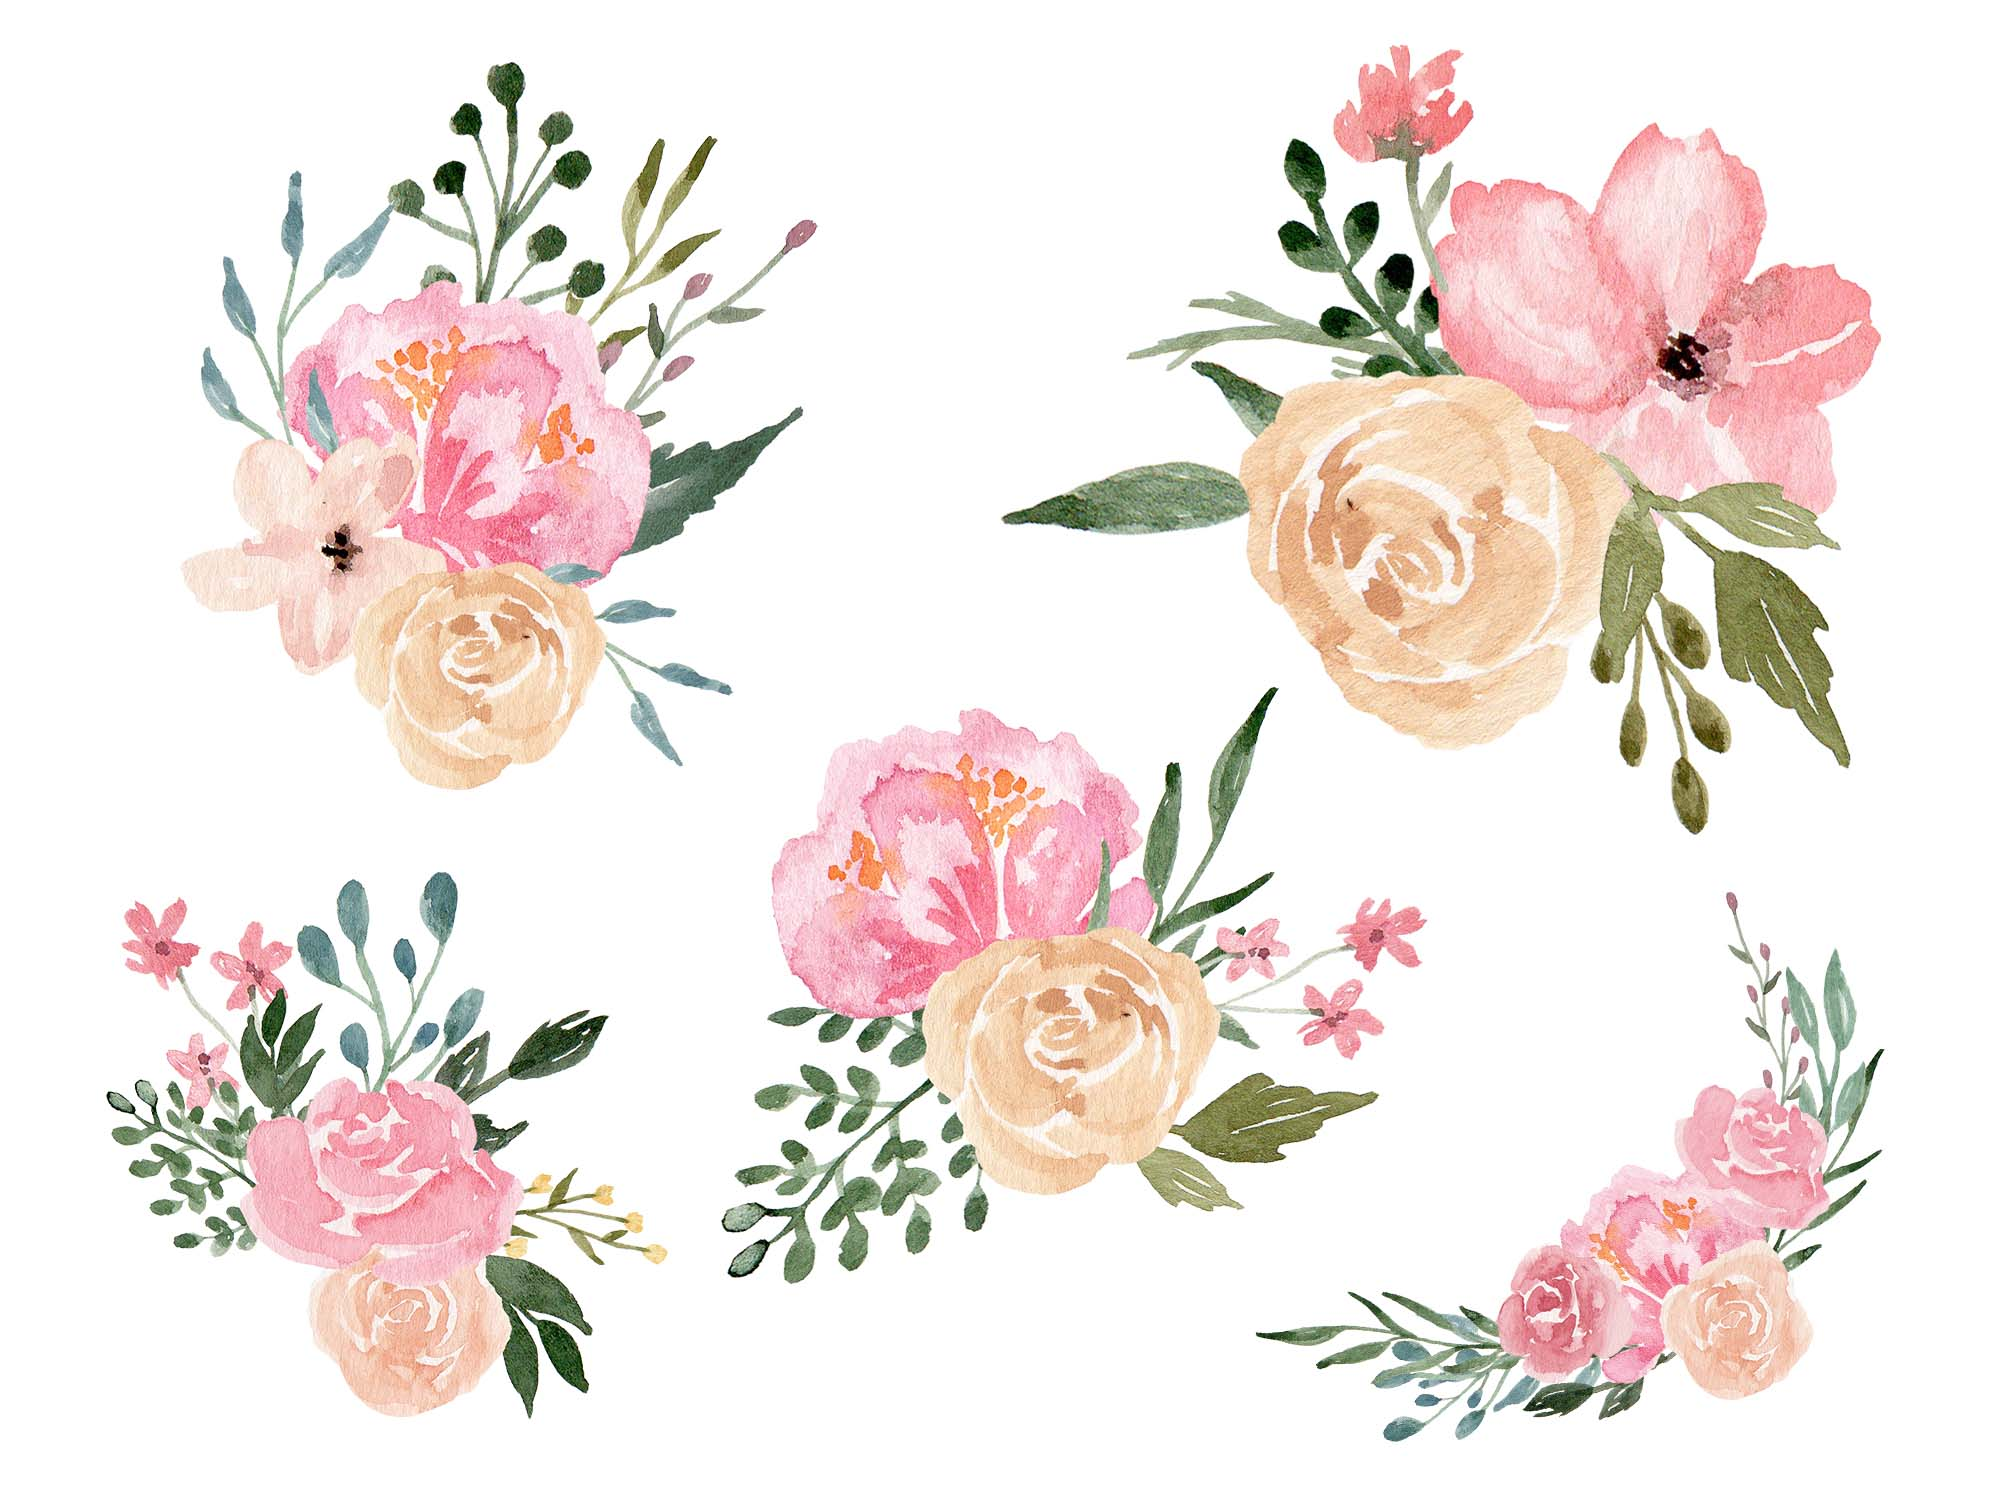 Dusty Blooms Floral Design 3